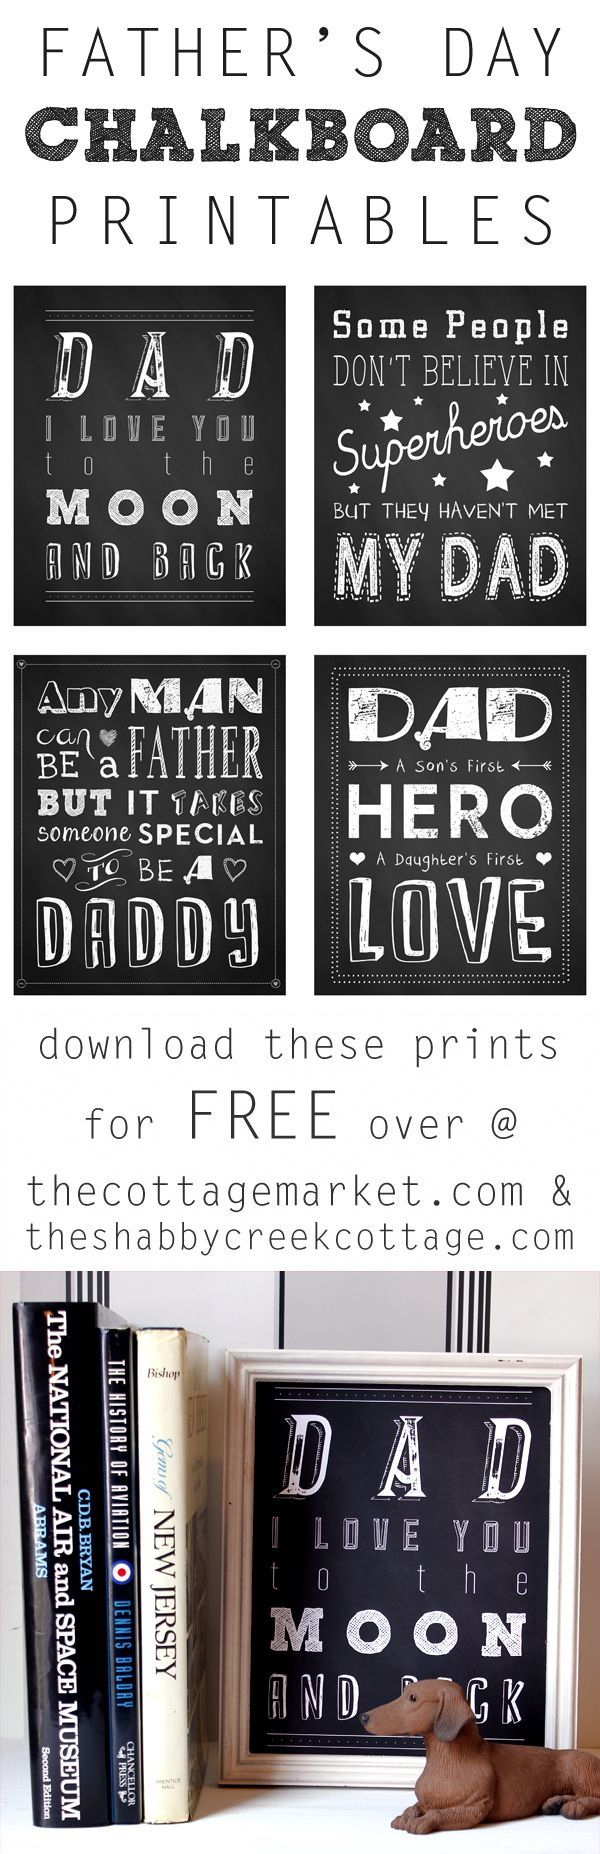 Father's Day Chalkboard Printables #CPDads #CafePress